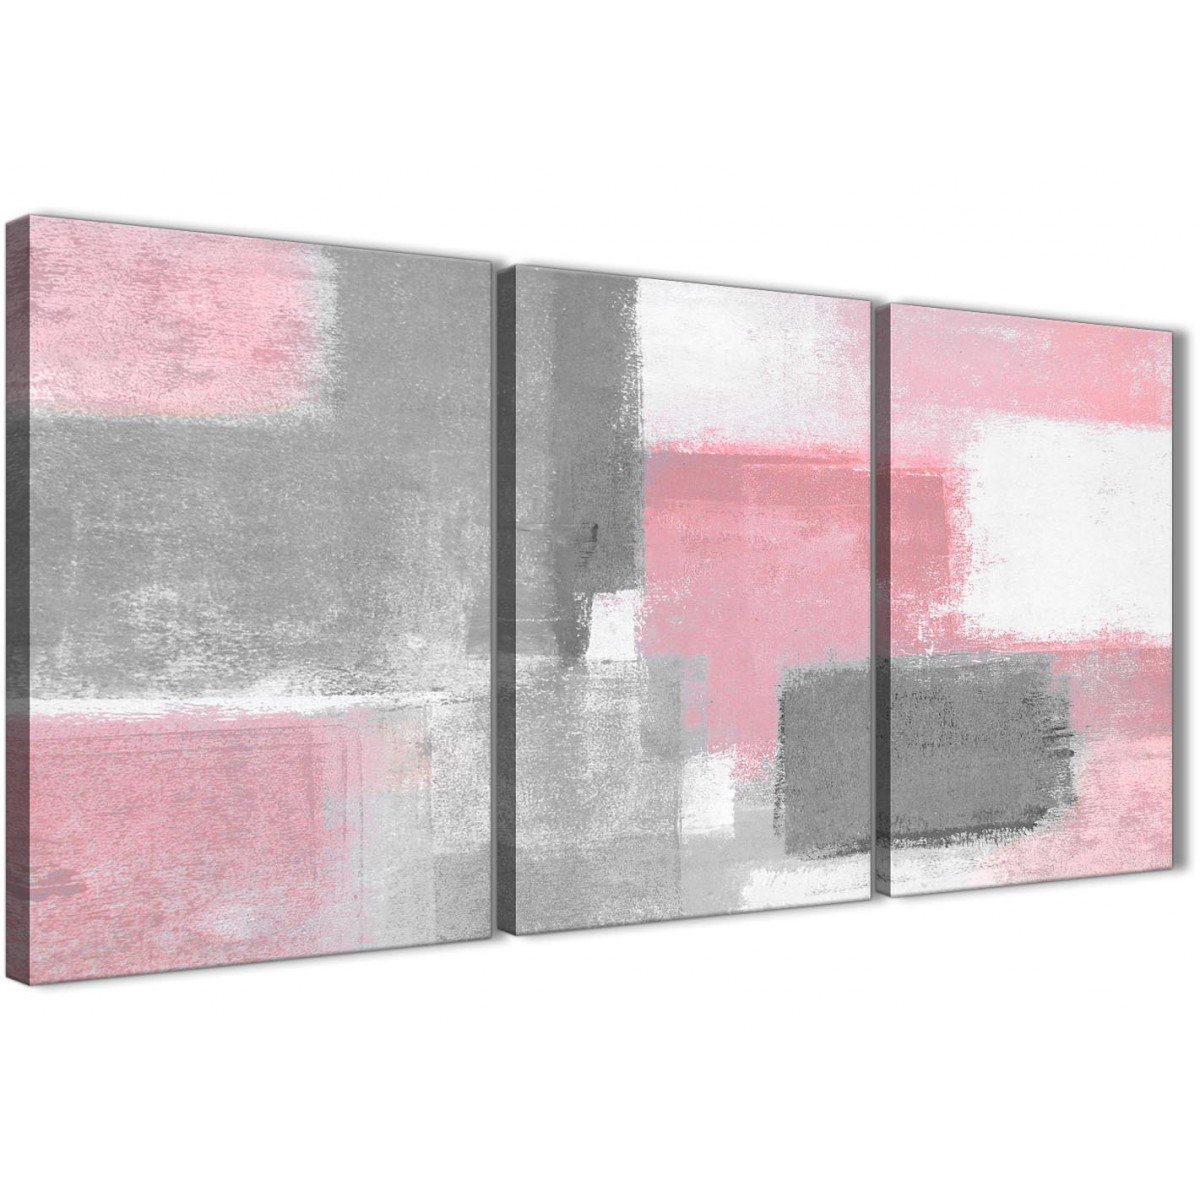 White Dining Room Set Sale 3 Piece Blush Pink Grey Painting Office Canvas Wall Art